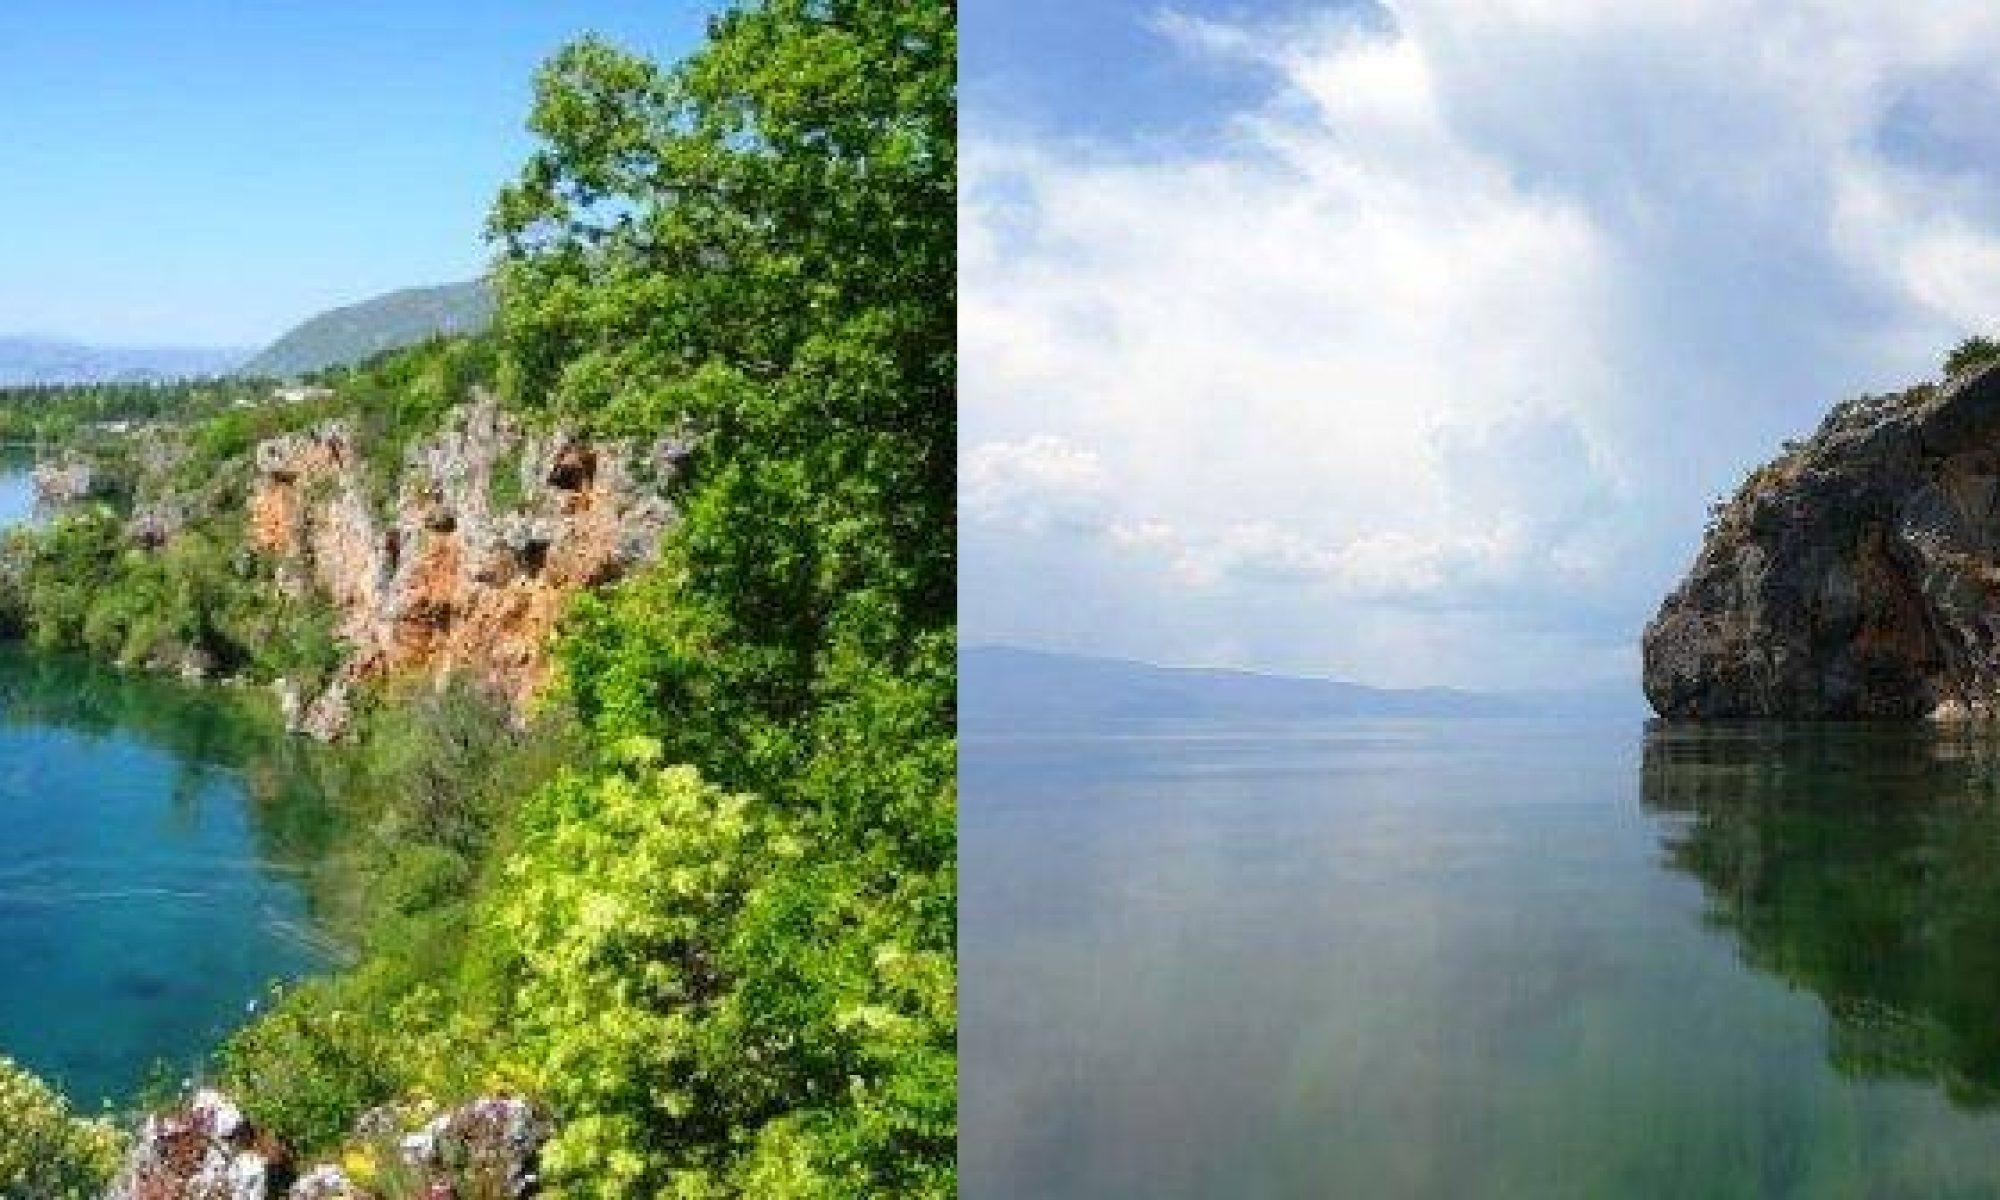 Conservation of Velidab - Biodiversity Heaven in Lake Ohrid